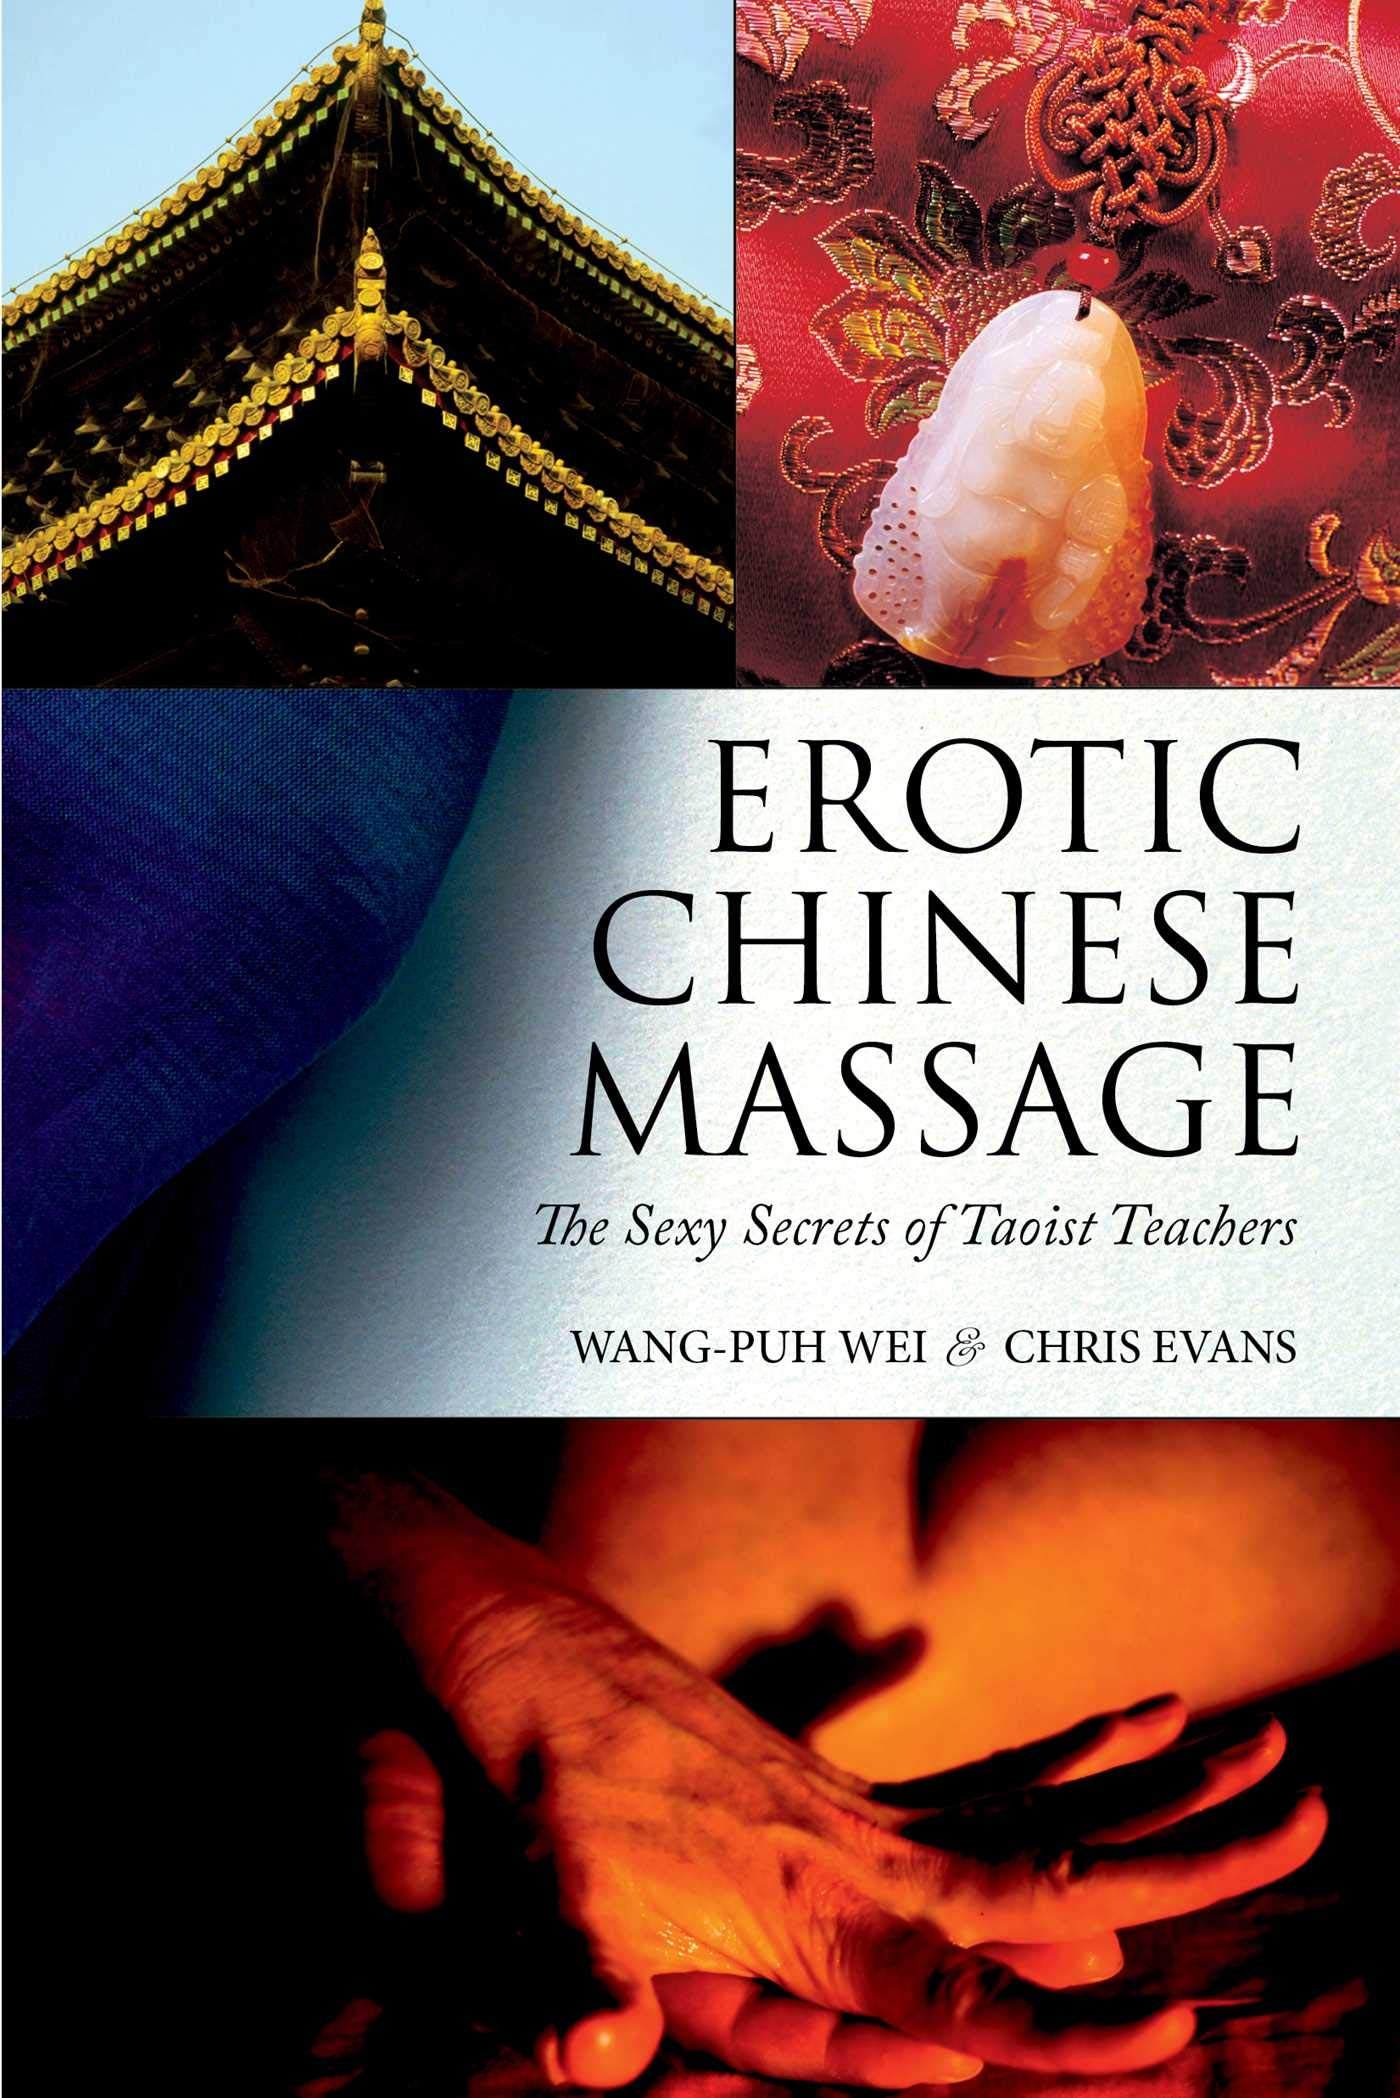 Erotic Chinese Massage: The Sexy Secrets of Taoist Teachers Paperback –  August 18, 2015